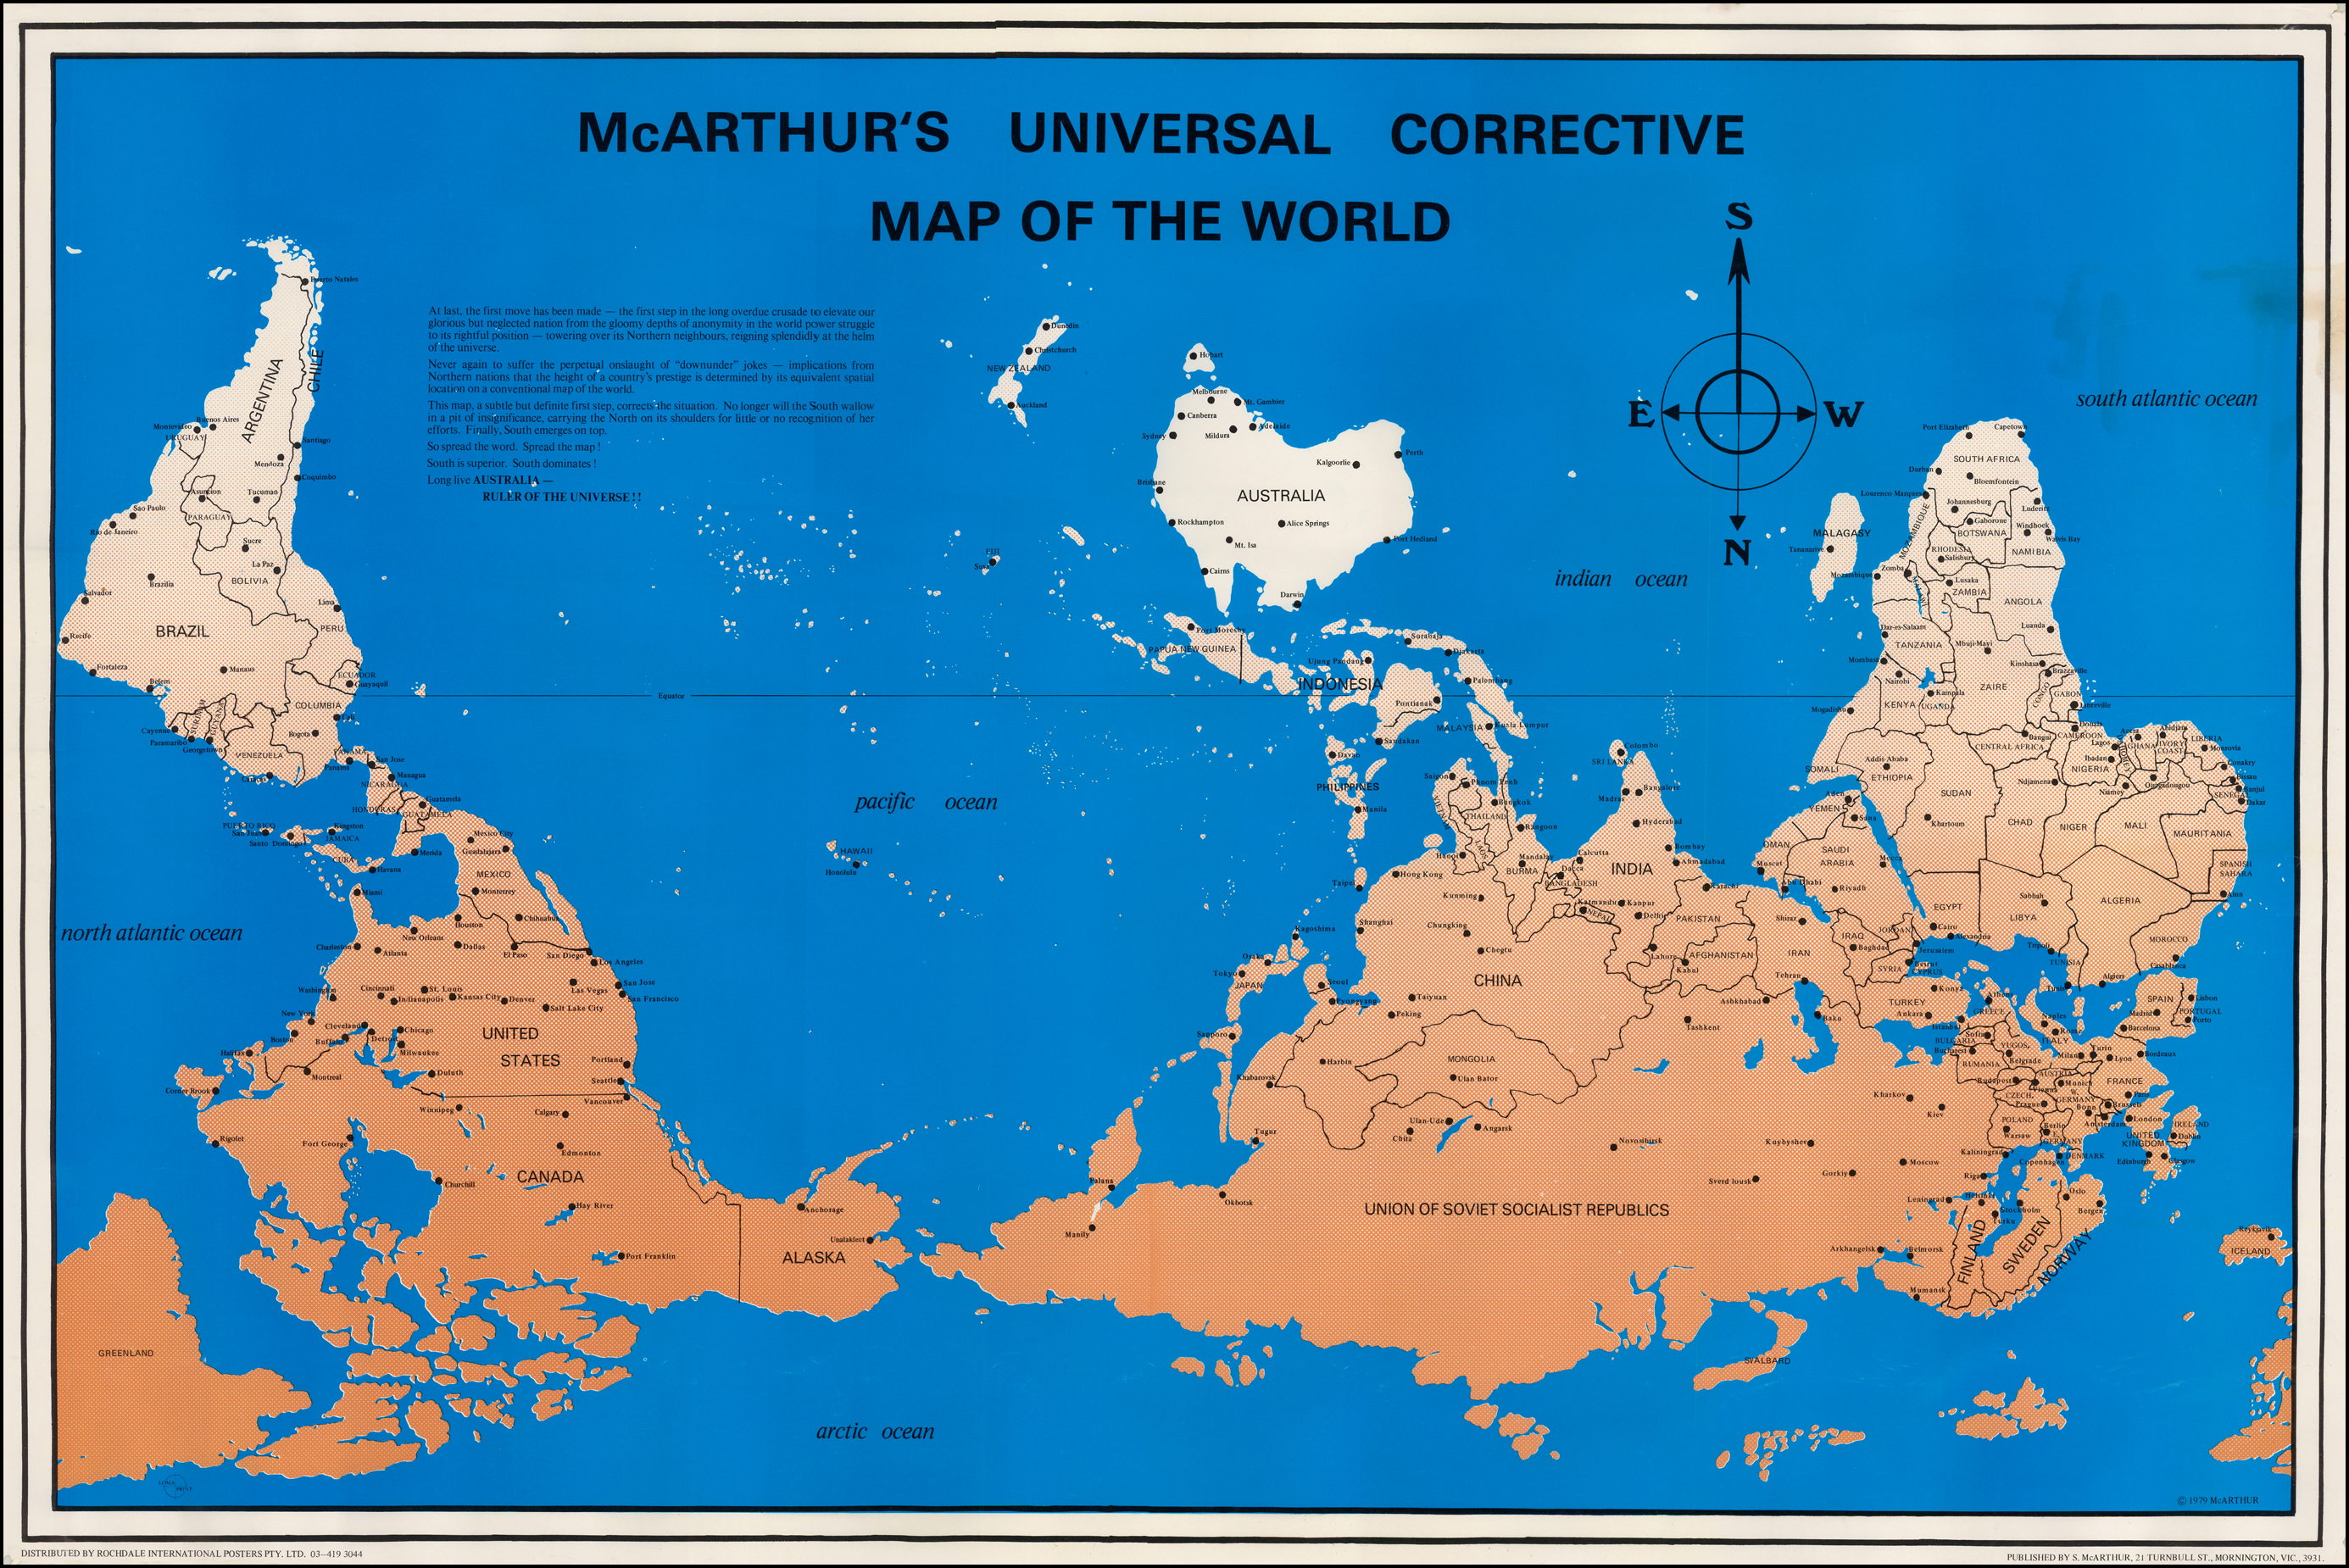 Mcarthurs Universal Corrective Map Of The World McArthur's Universal Corrective Map of the World   Barry Lawrence